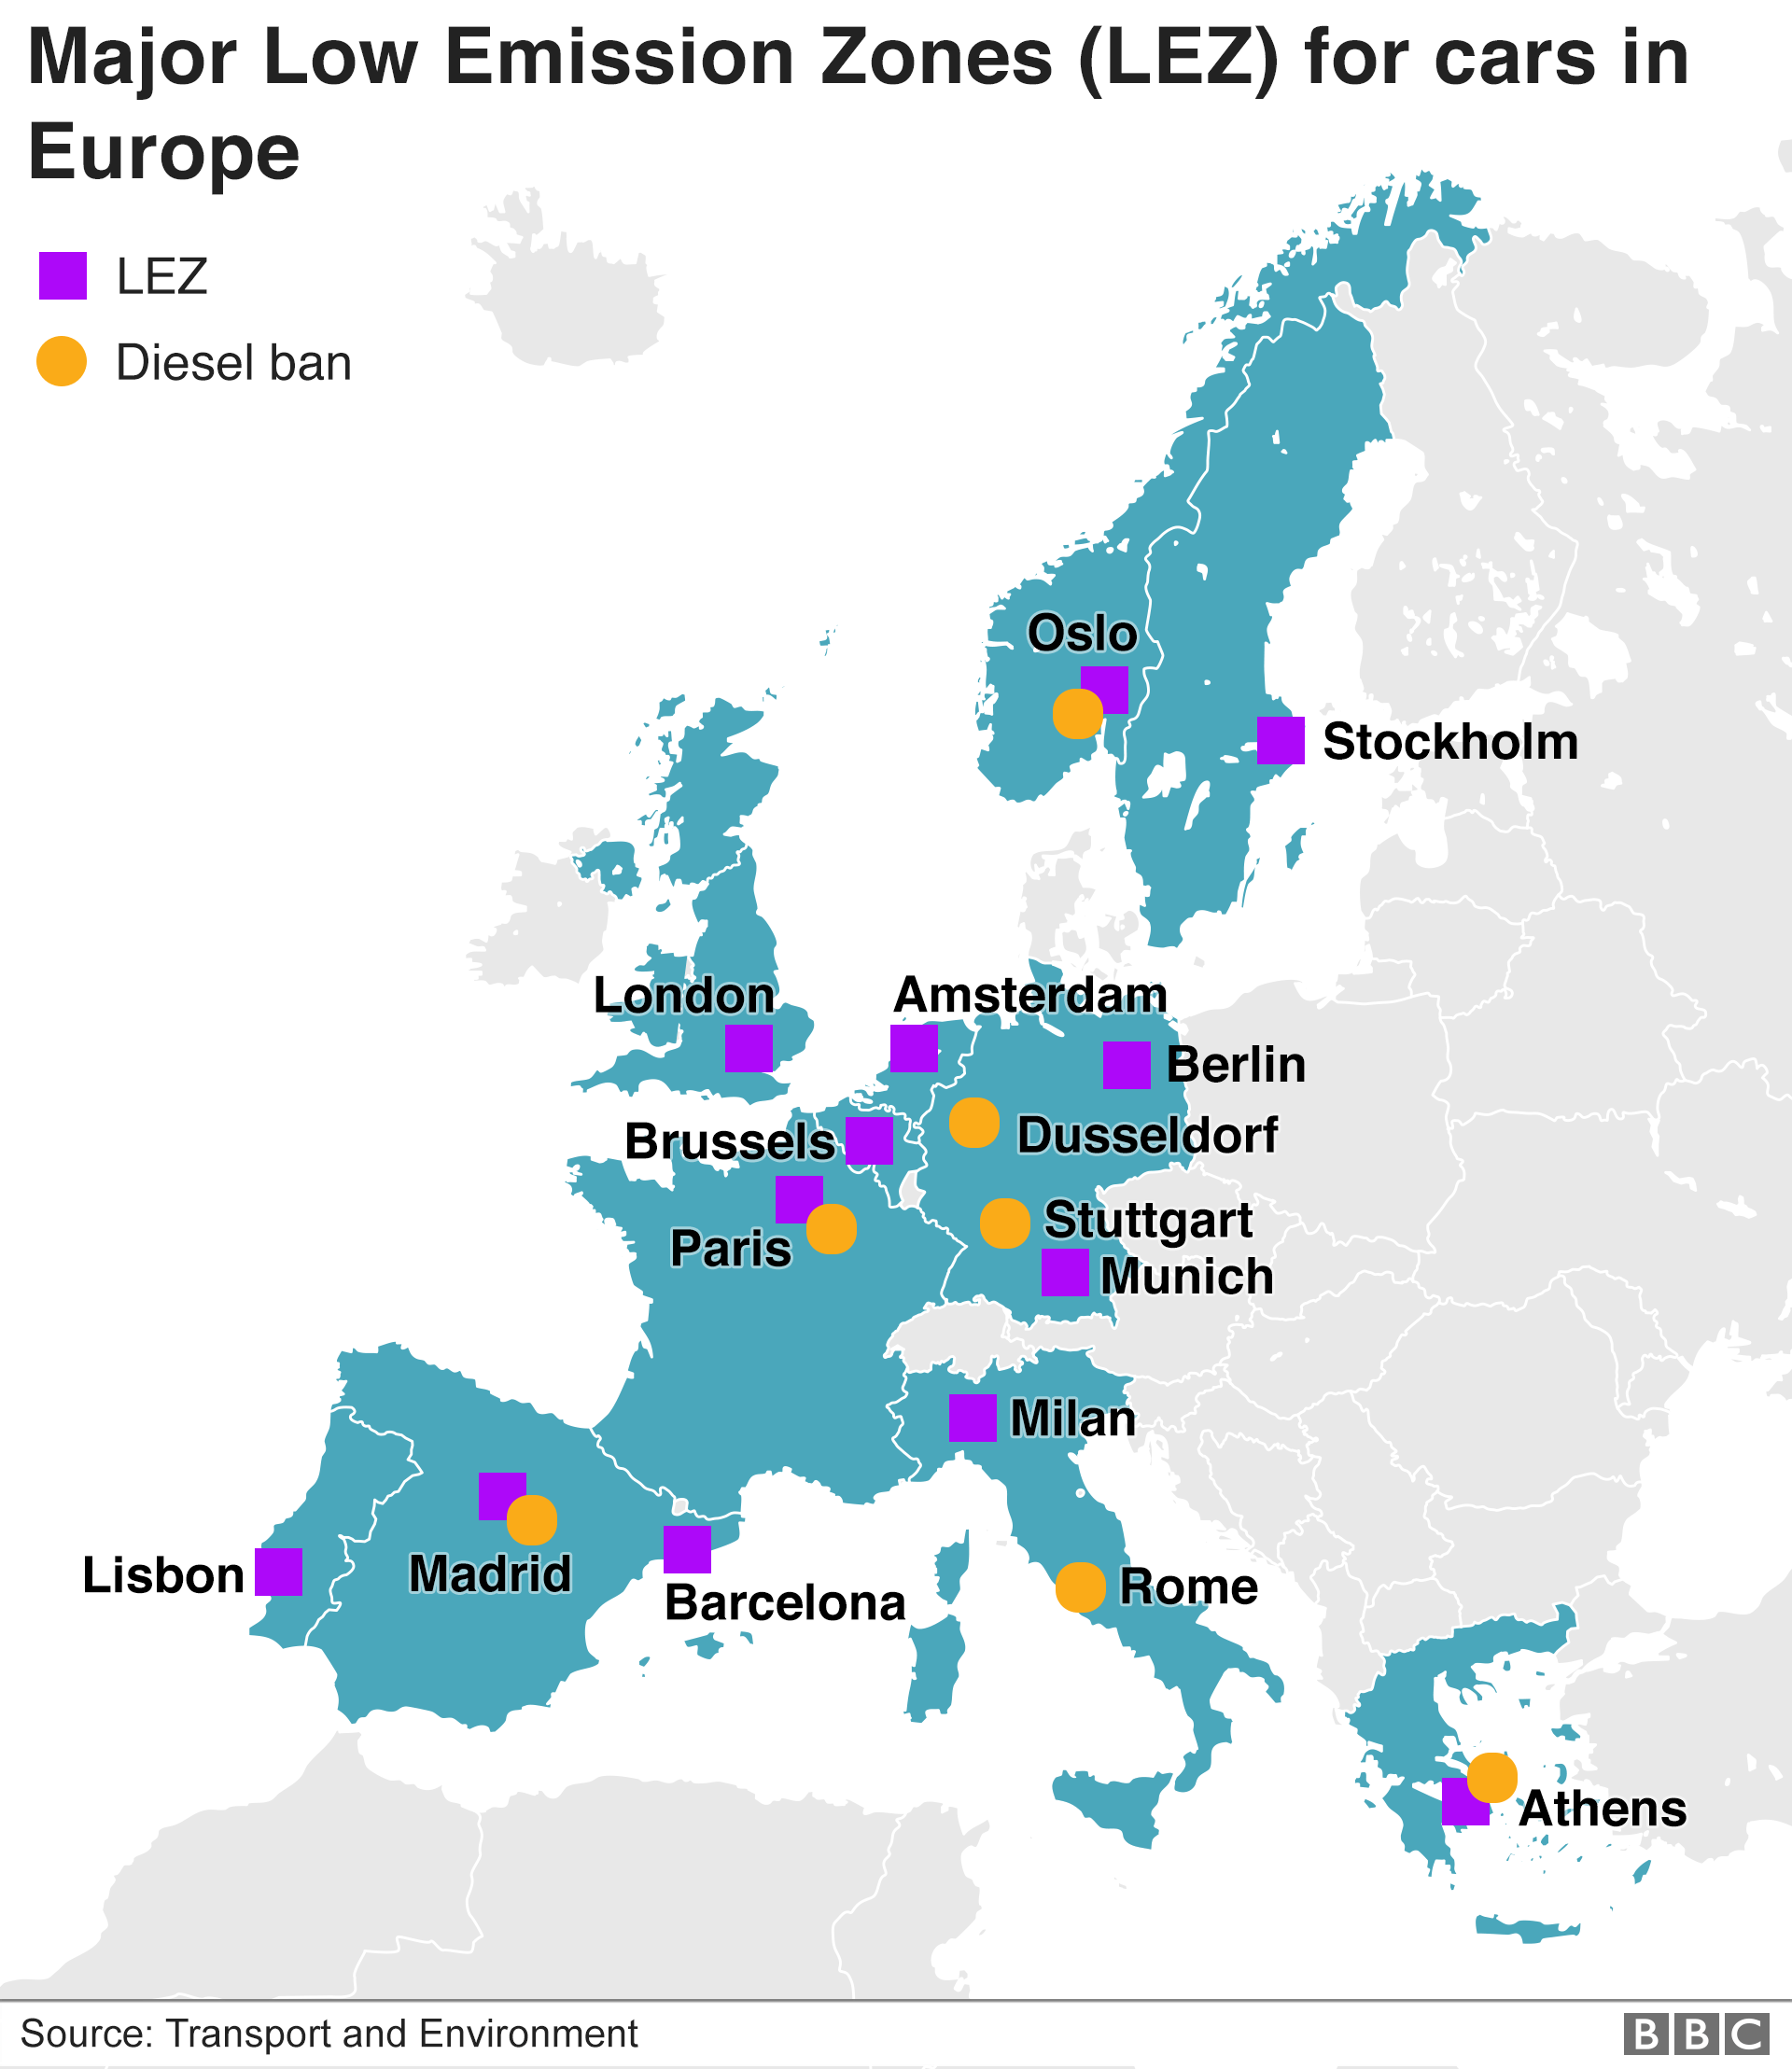 majow low emission zones in EUROPE